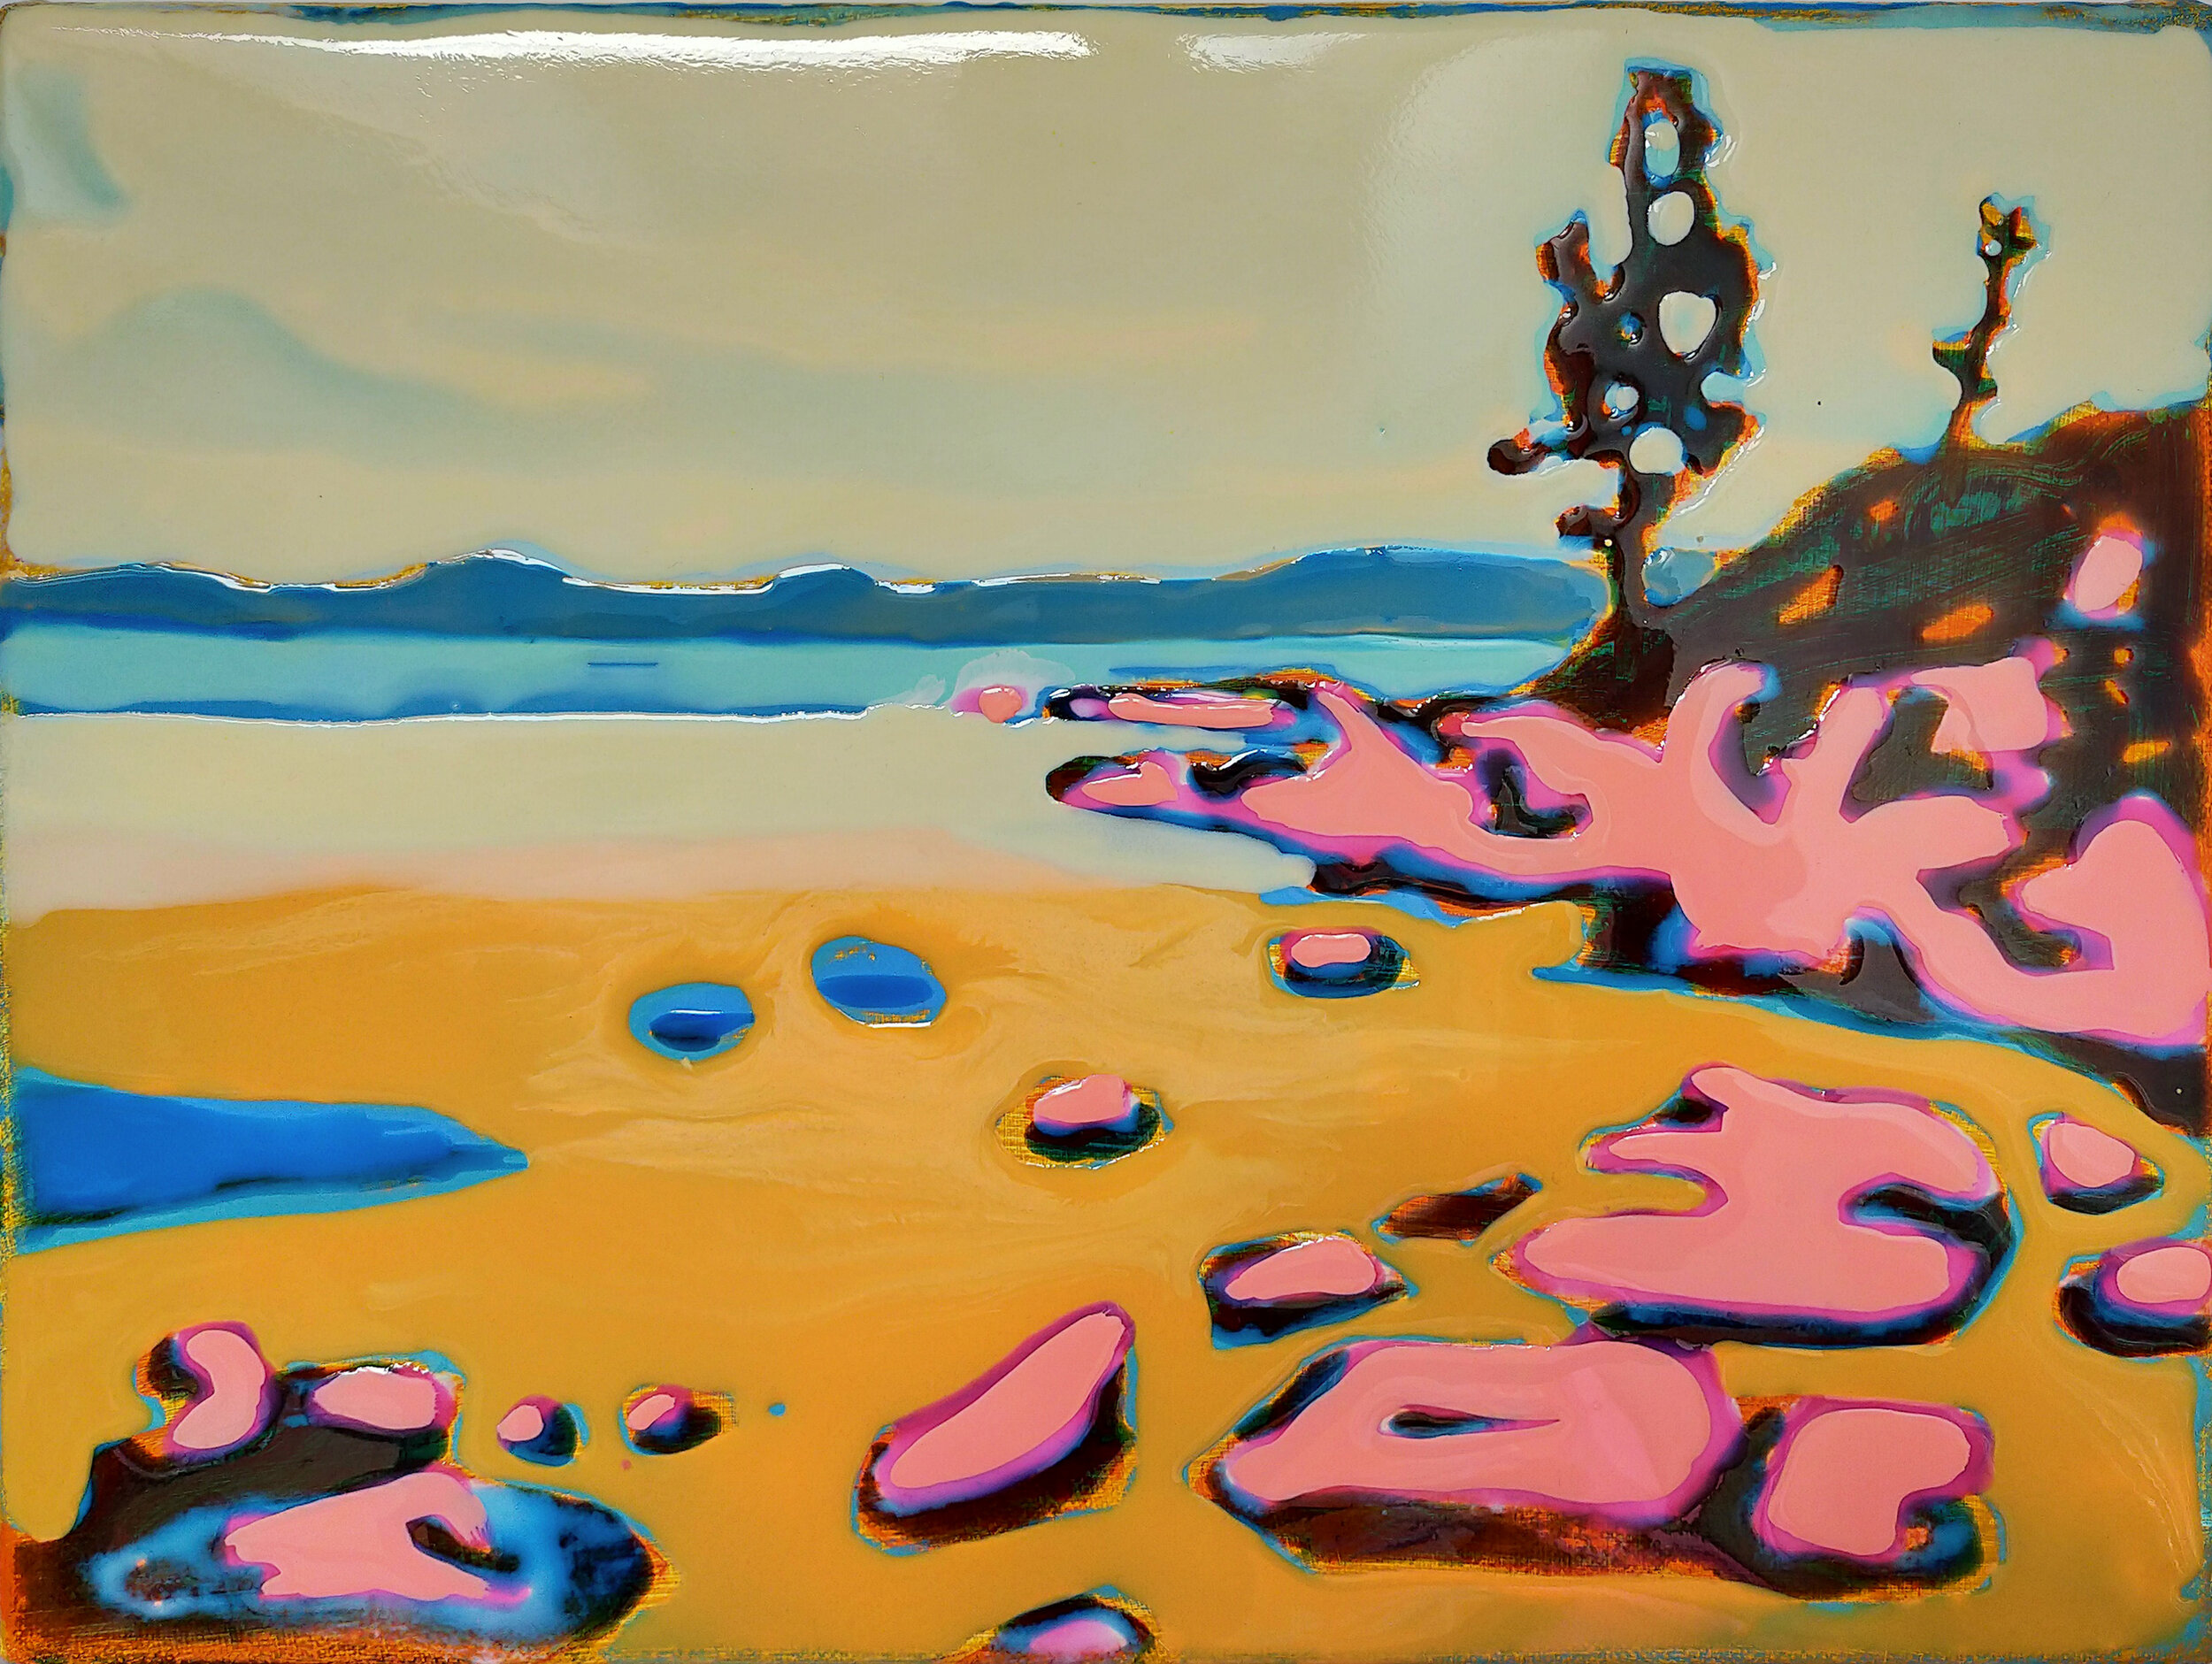 LAKE TAHOE - 2  30 x 40 cm acrylic and epoxy on canvas